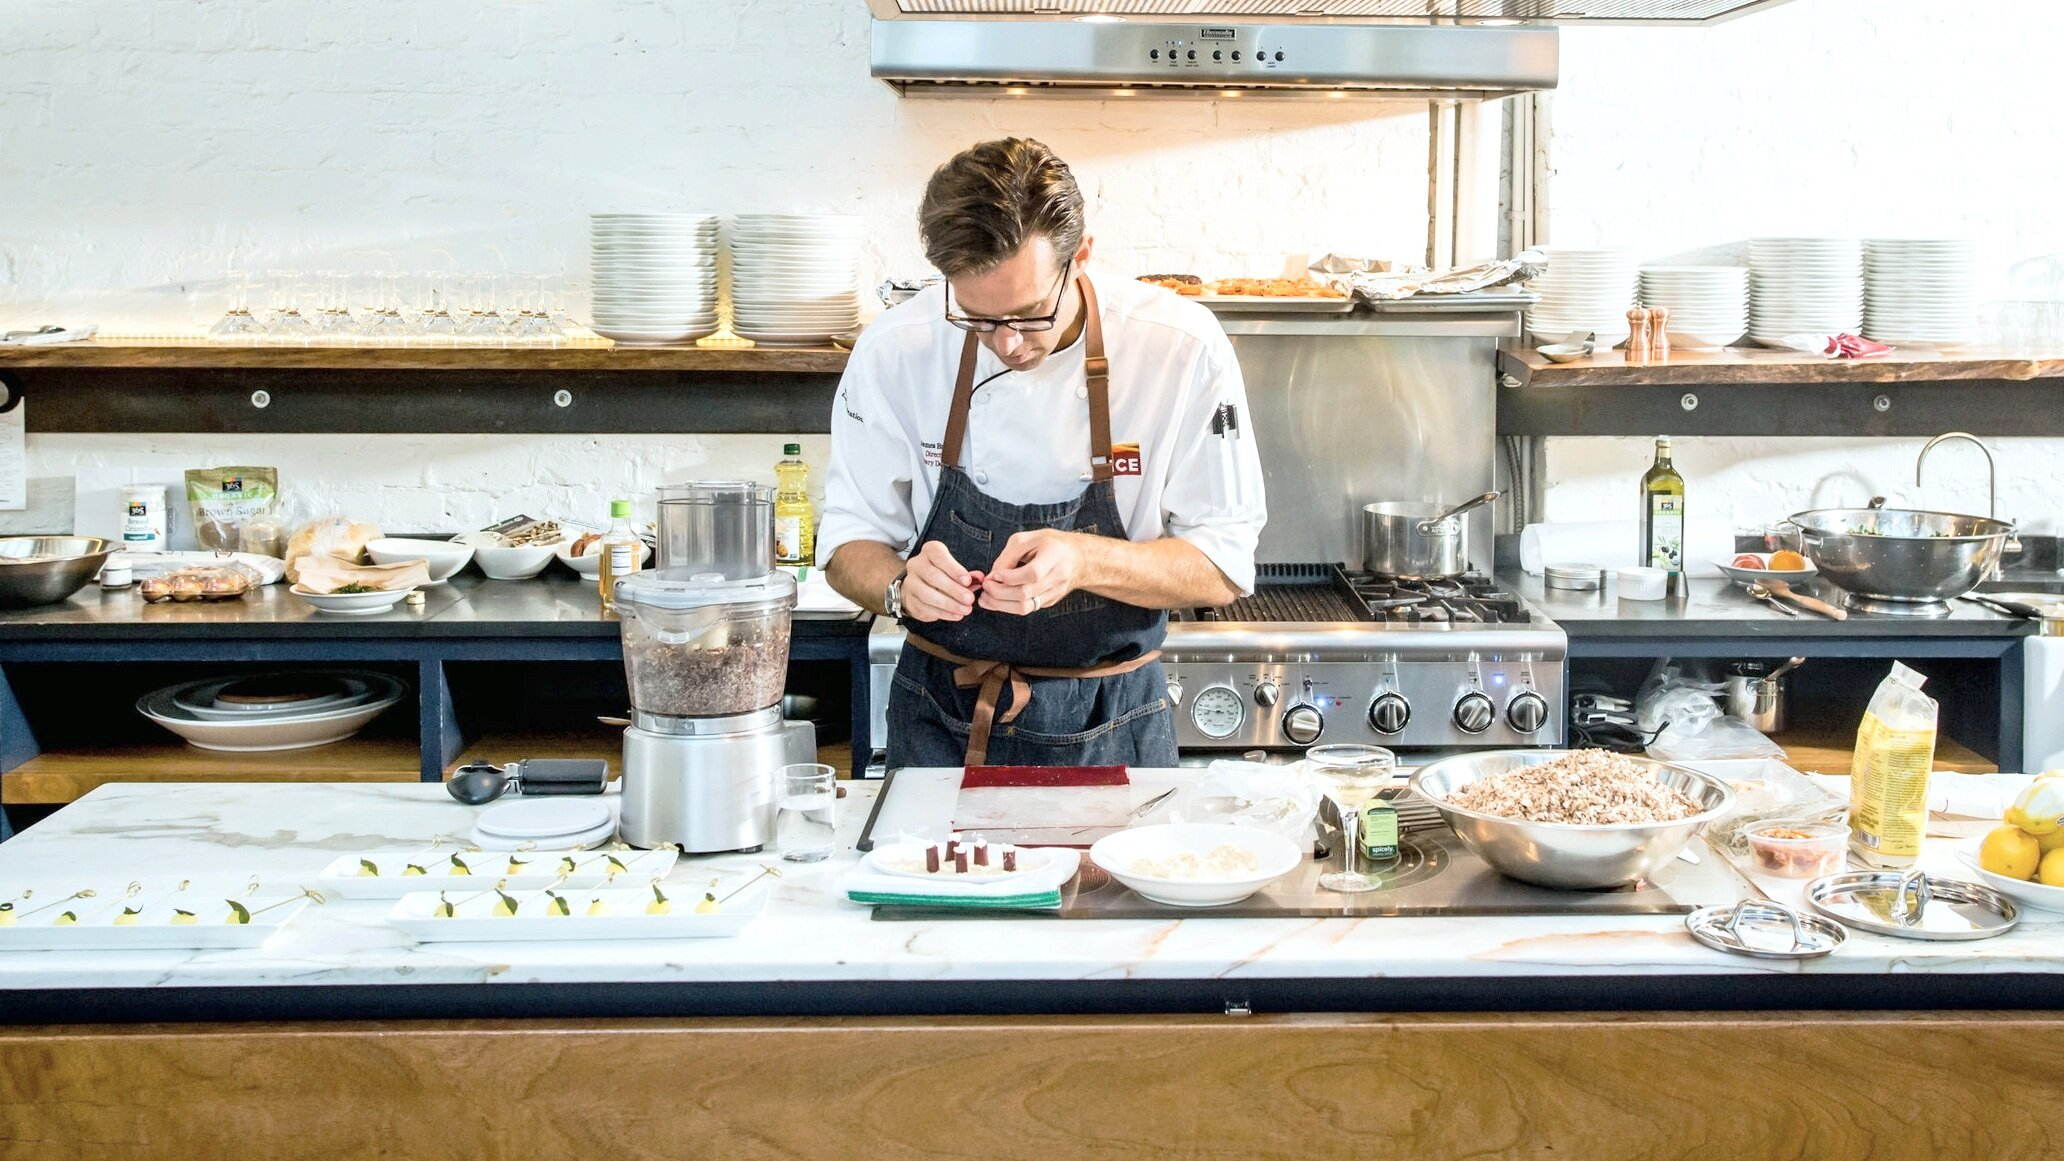 Photographer Hardy Wilson captured the beautiful natural light in the space during the preparations for a business dinner event with Chef James Briconie preparing a delicious dinner for 25 guests.